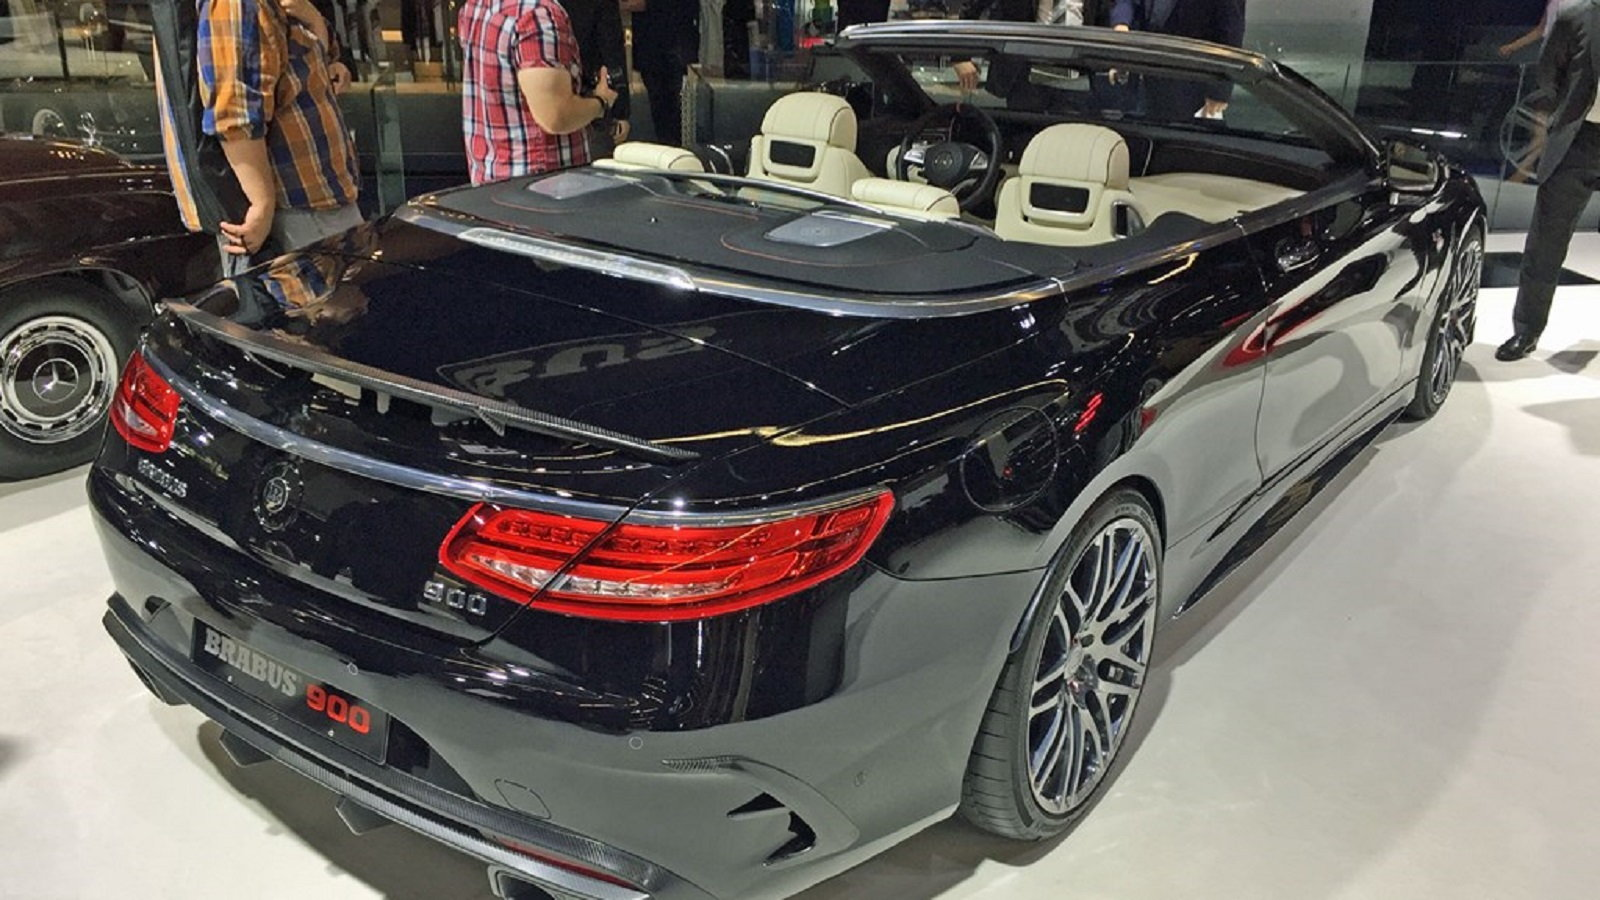 Brabus Rocket 900 Cabrio Might Rip Your Hair Out